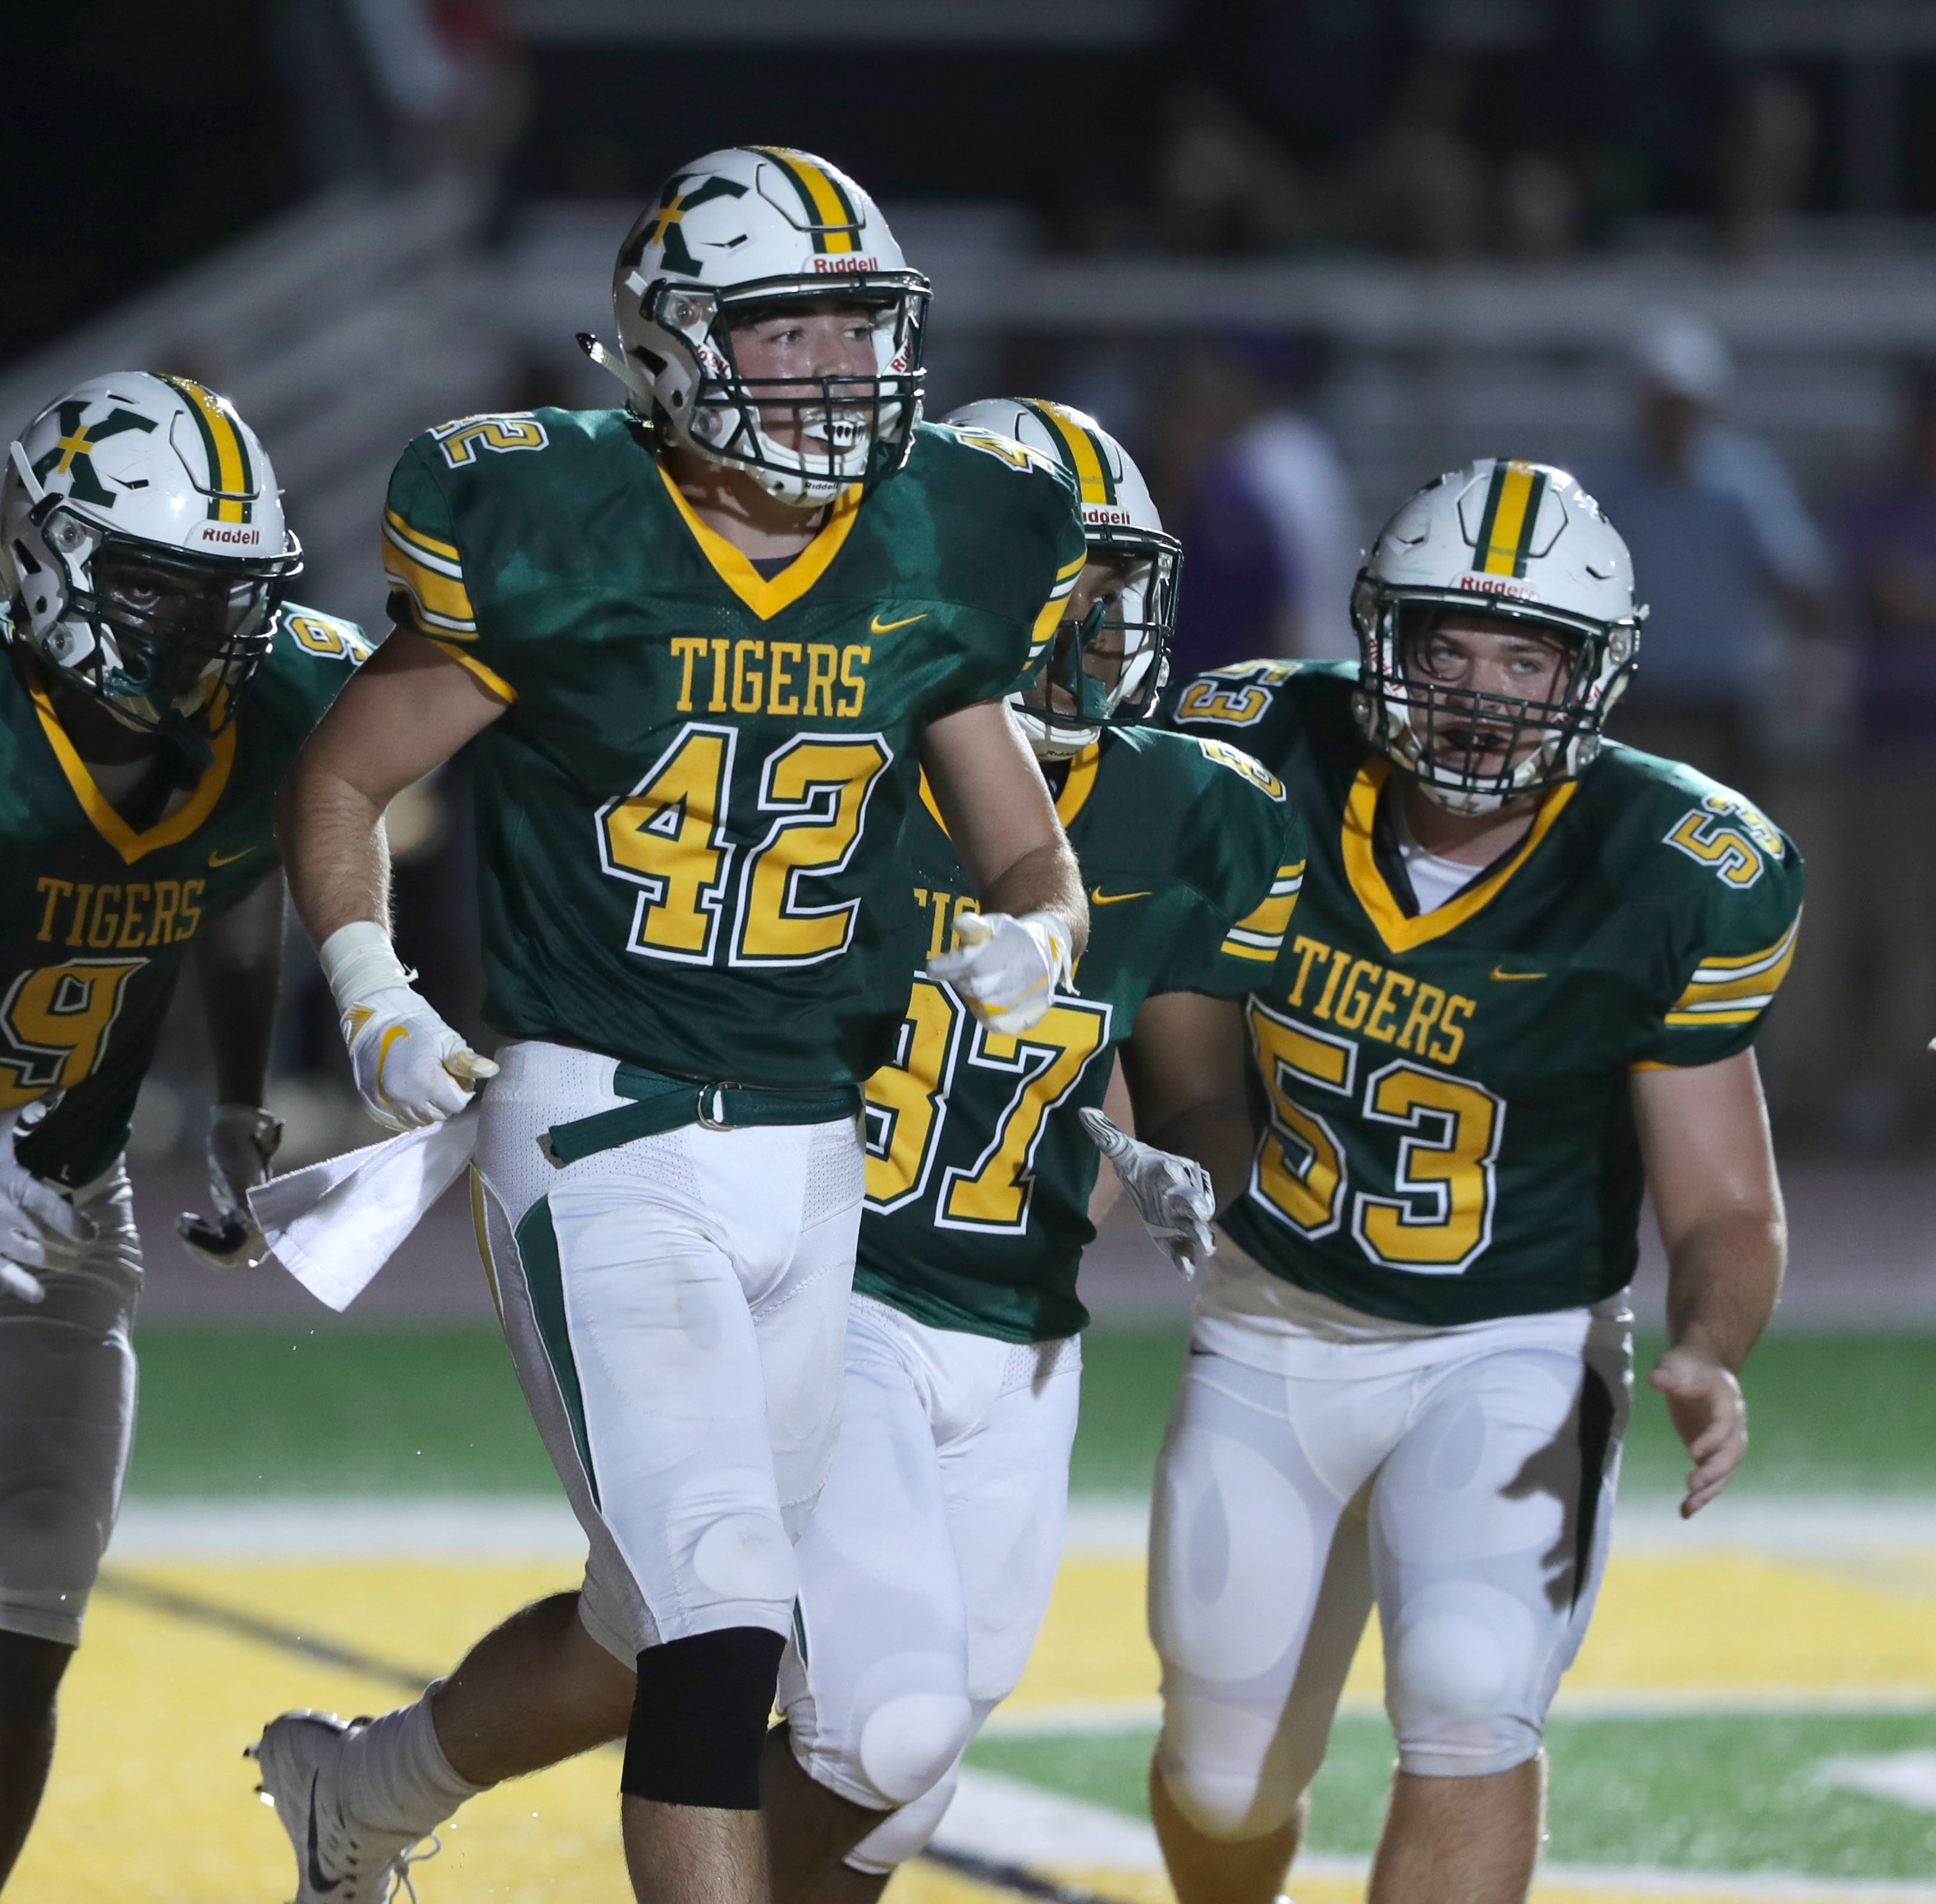 St. Xavier weathers the rain in win over Butler, grabs district title